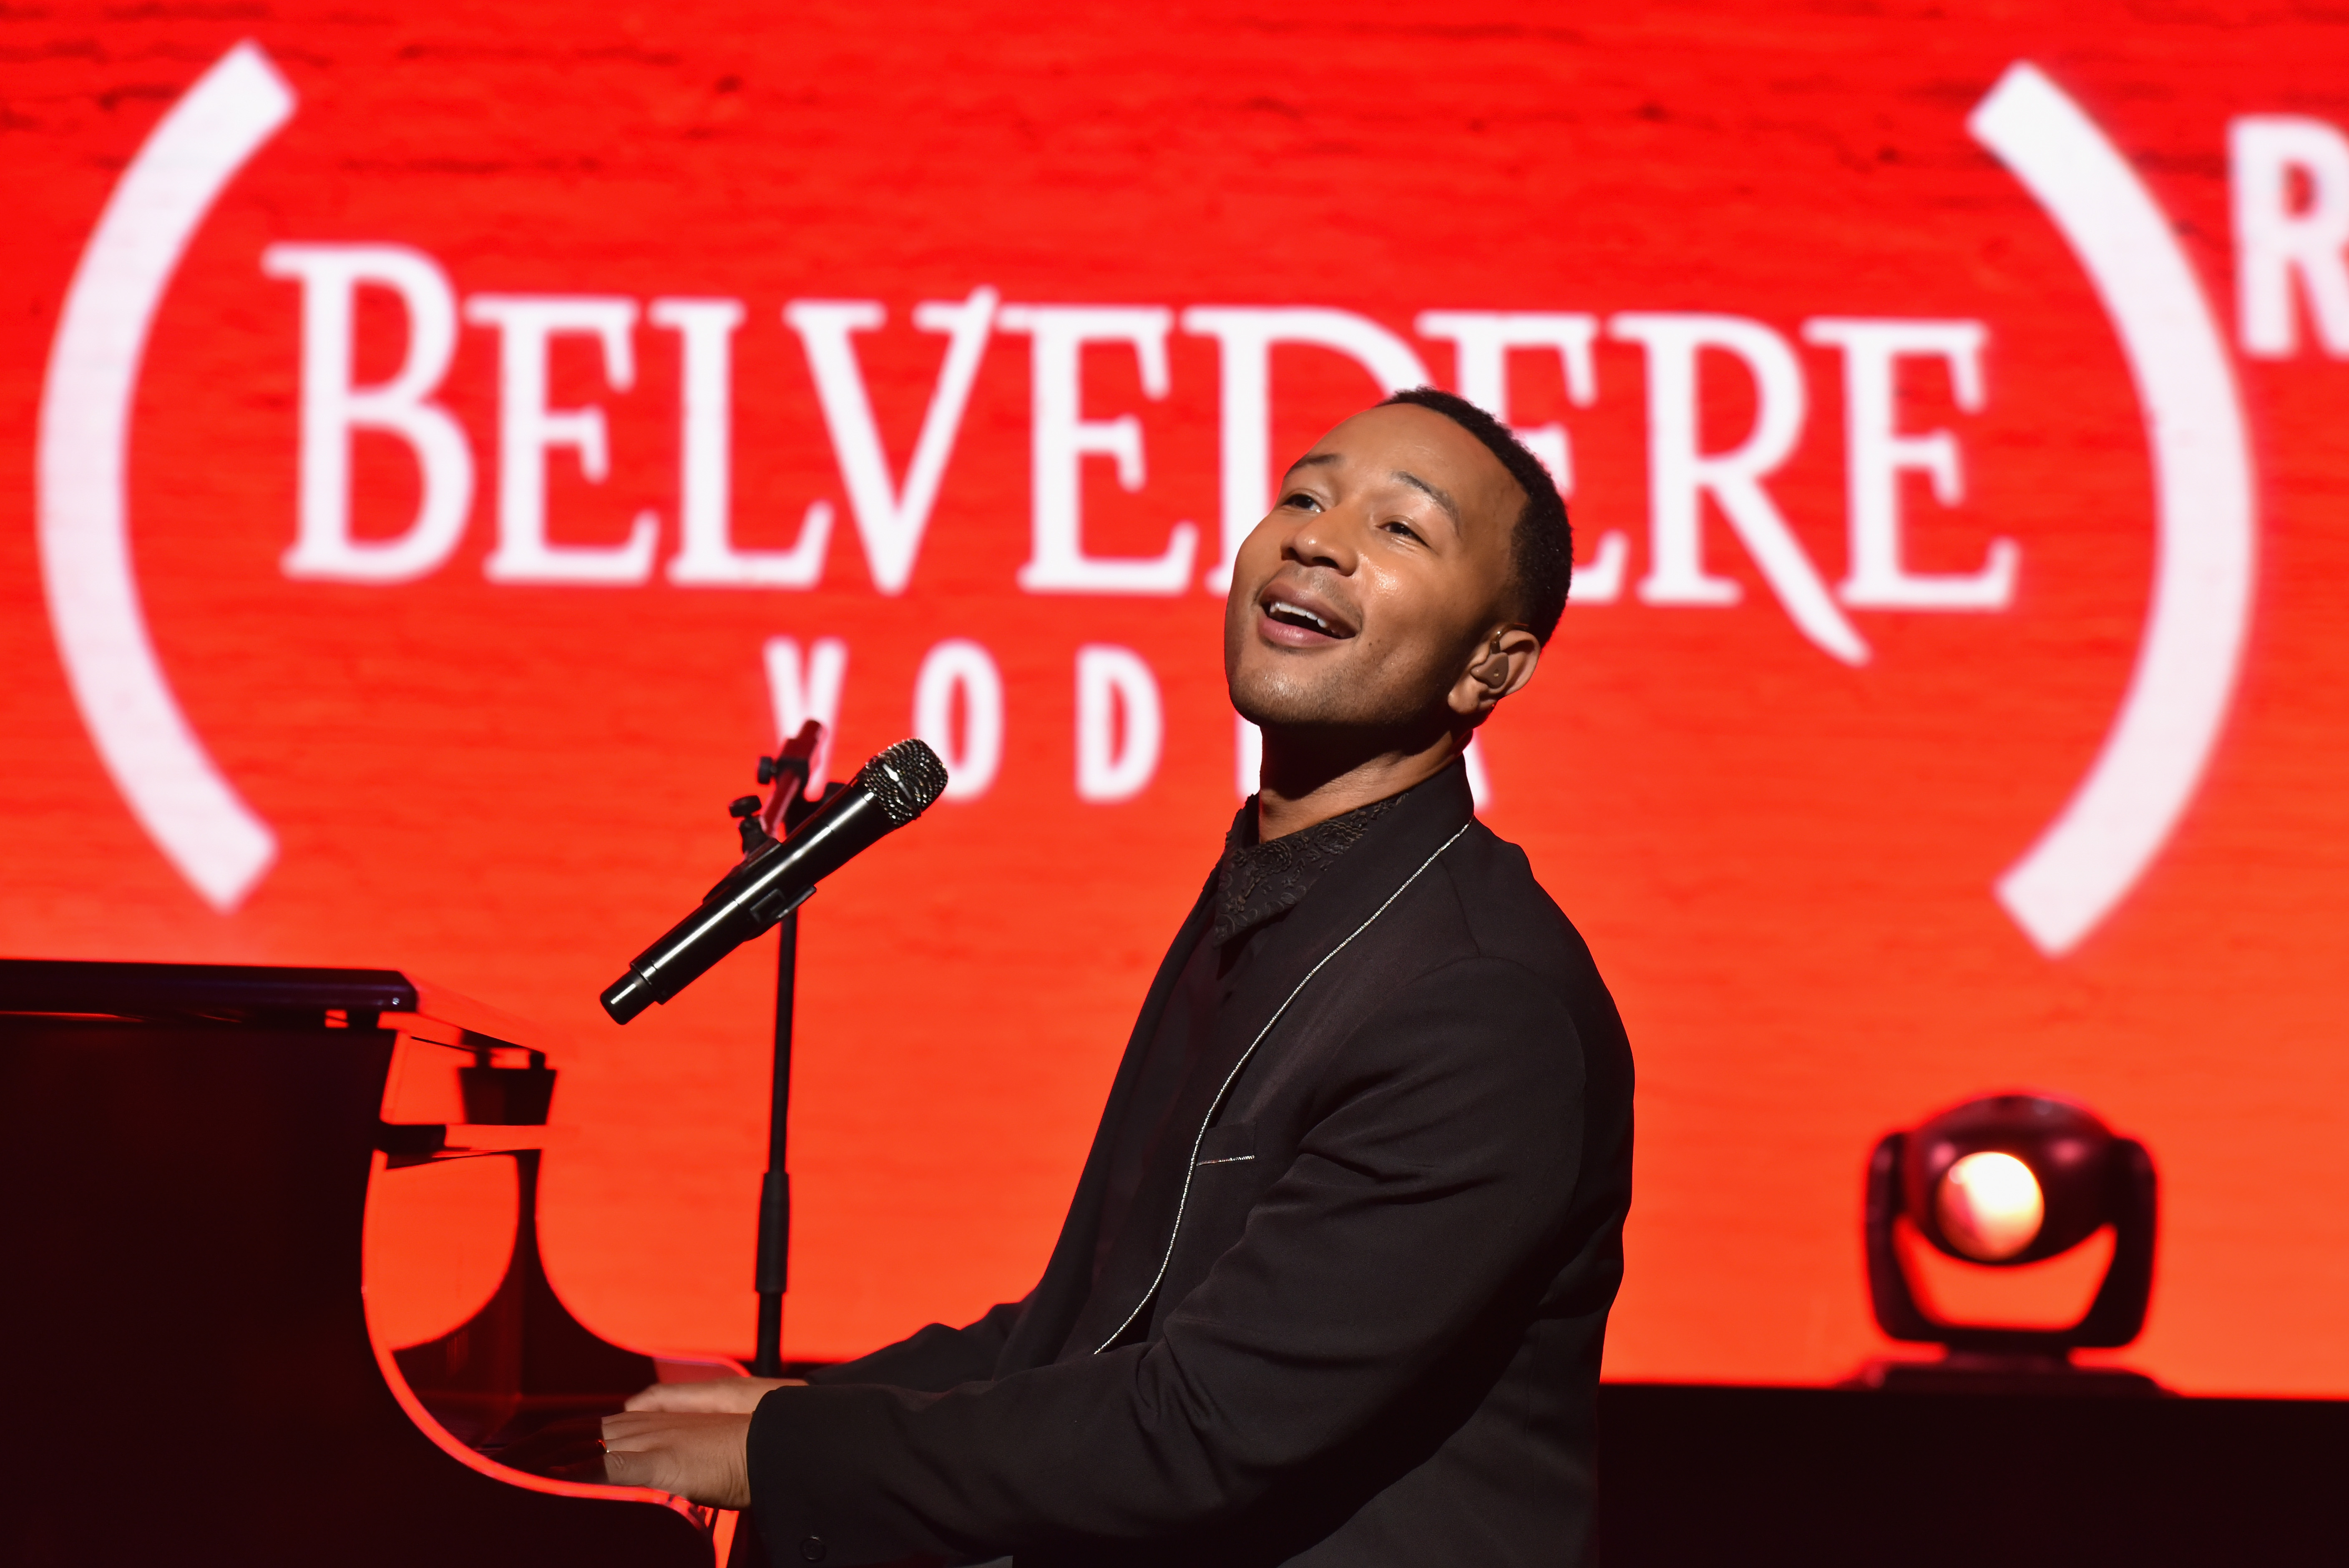 NEW YORK, NY - AUGUST 27: John Legend attends the Belvedere Presents One Night for Life with John Legend at the Apollo Theater at The Apollo Theater on August 27, 2016 in New York City. (Photo by Jared Siskin/Patrick McMullan via Getty Images)